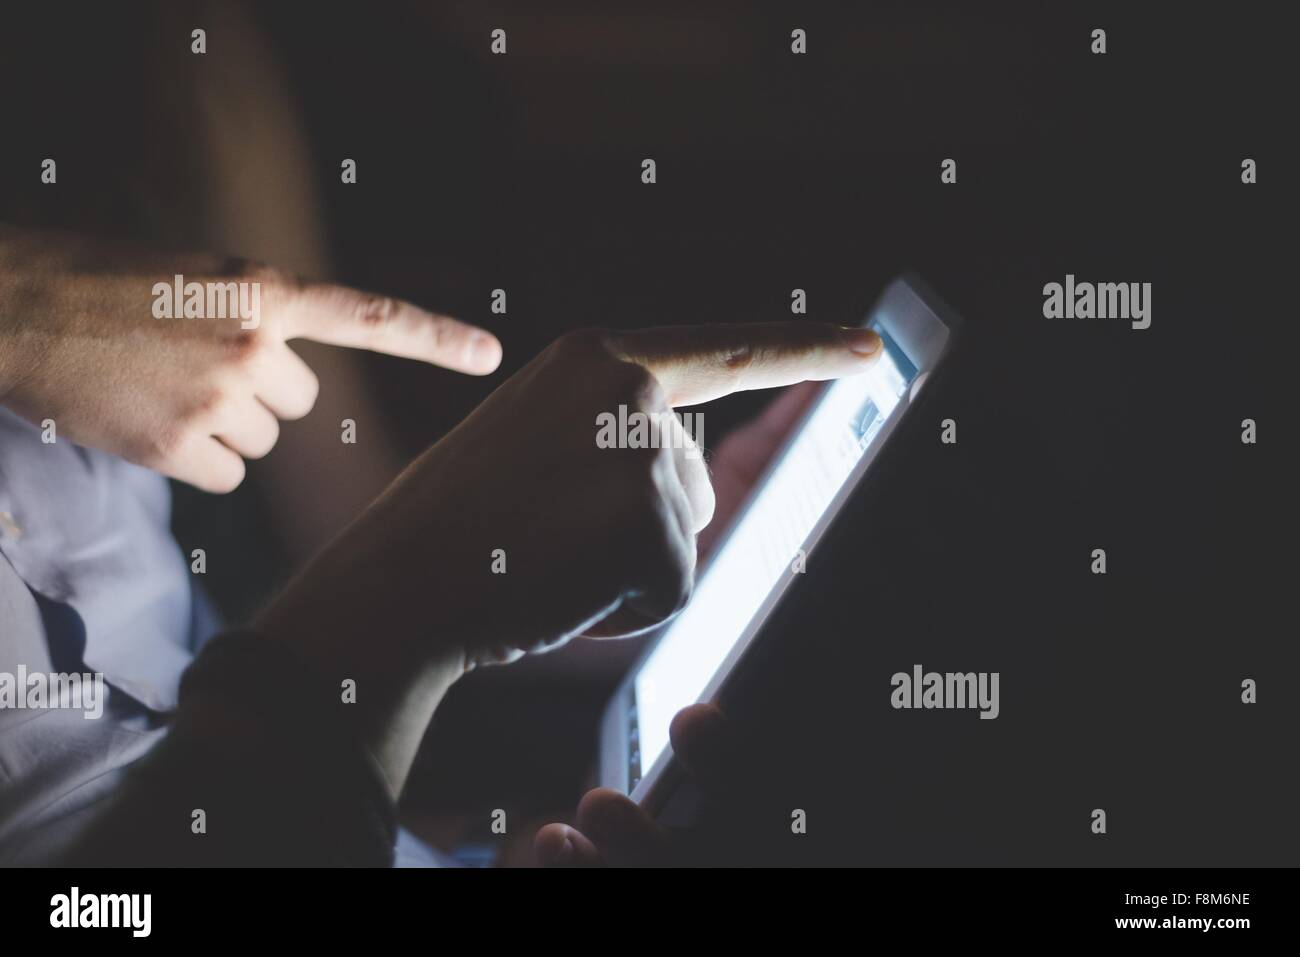 Side view of hands pointing at computer screen - Stock Image